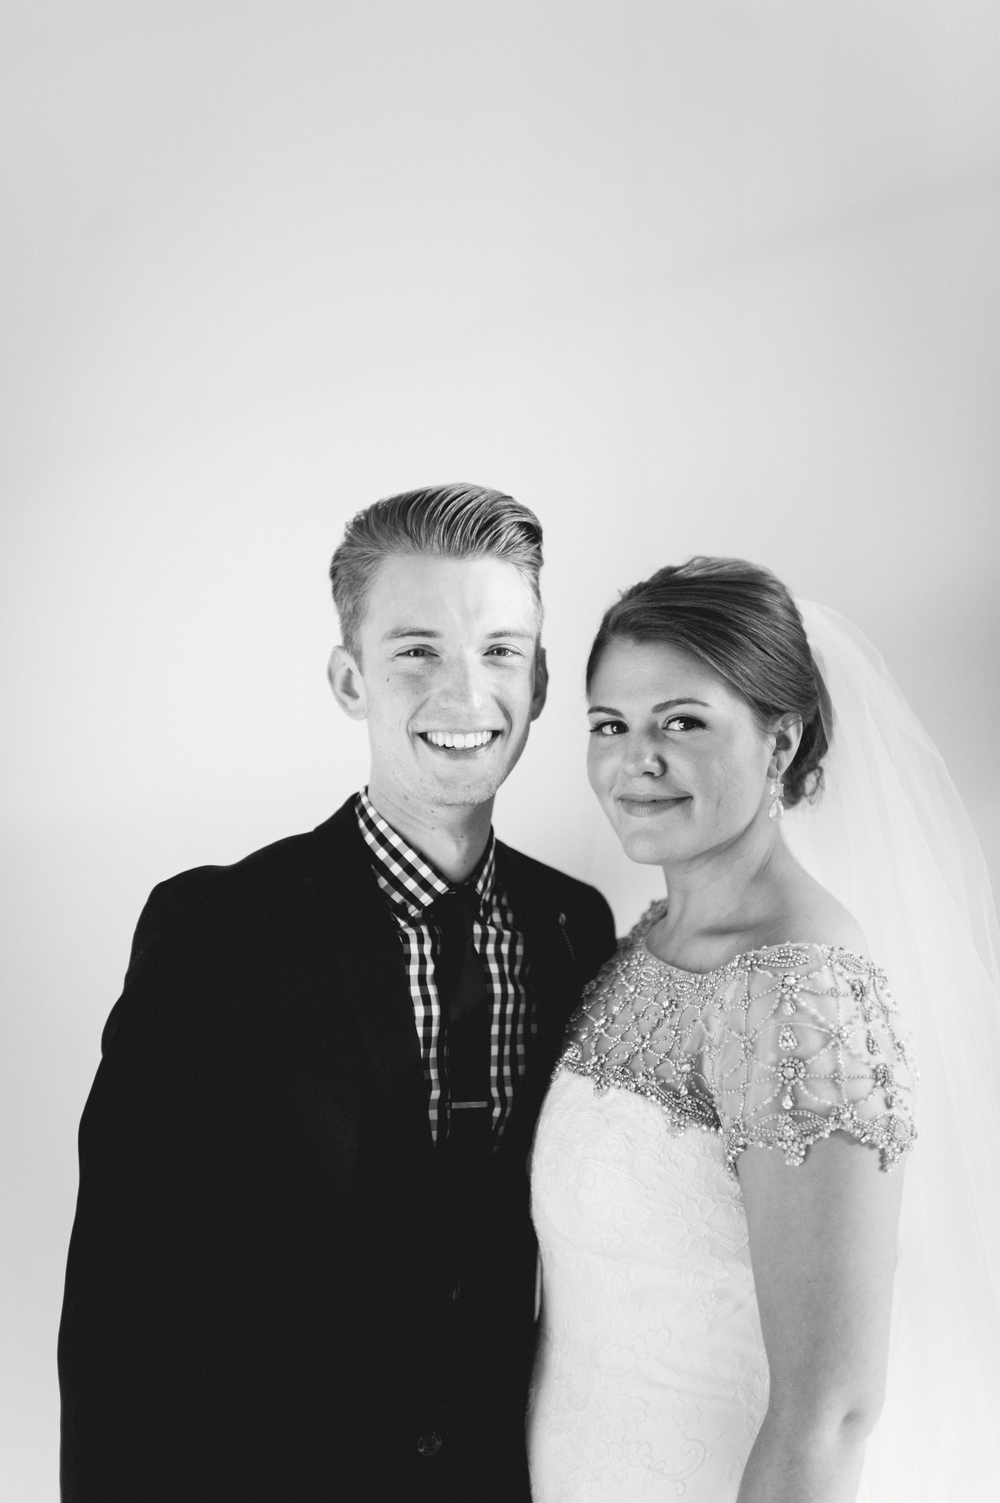 Libby+Jeff-128-Edit.jpg